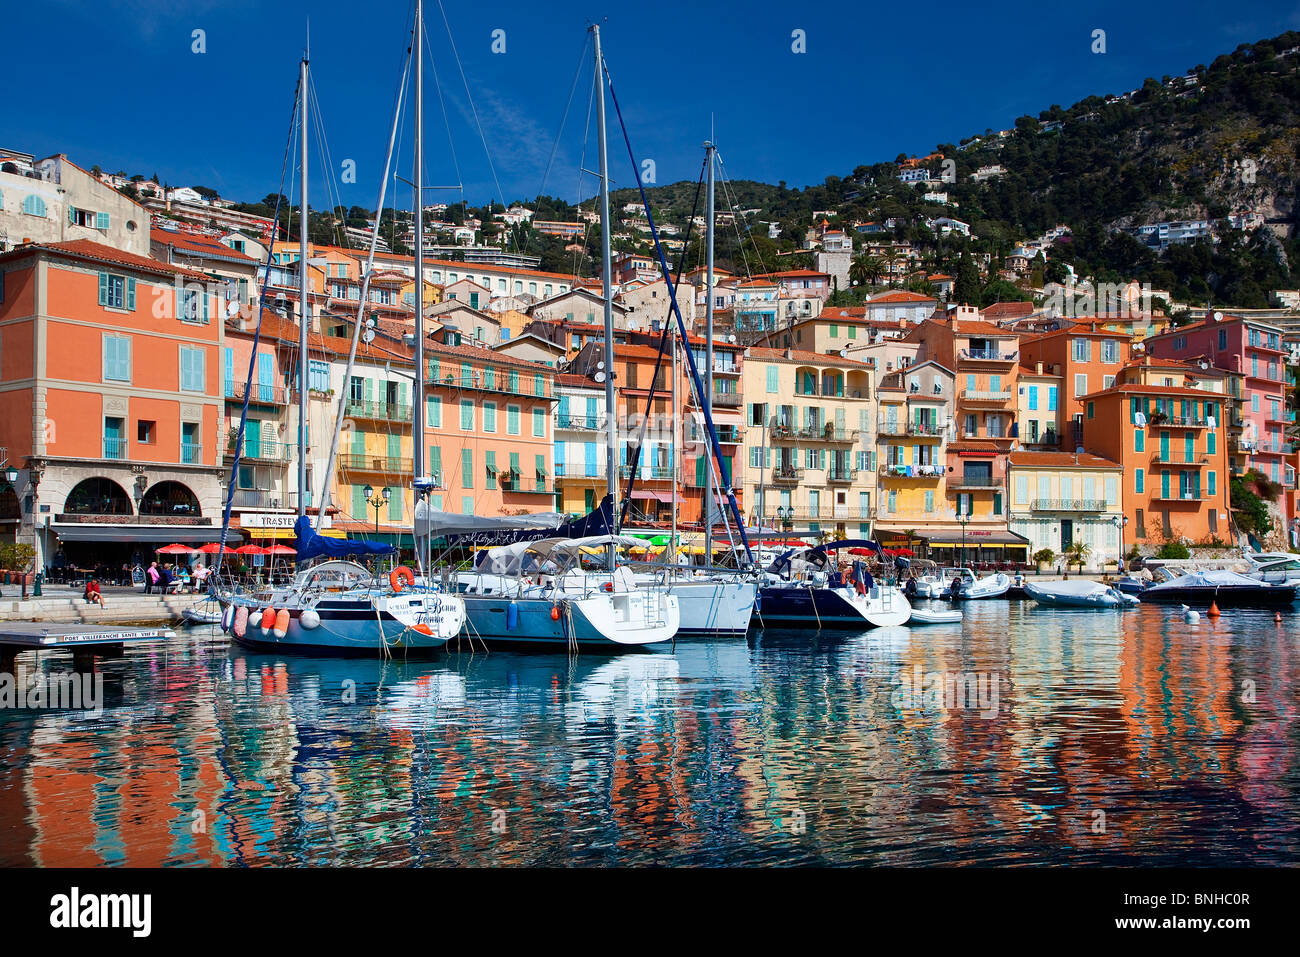 Europe, France, Alpes-Maritimes, Villefranche-sur-Mer - Stock Image